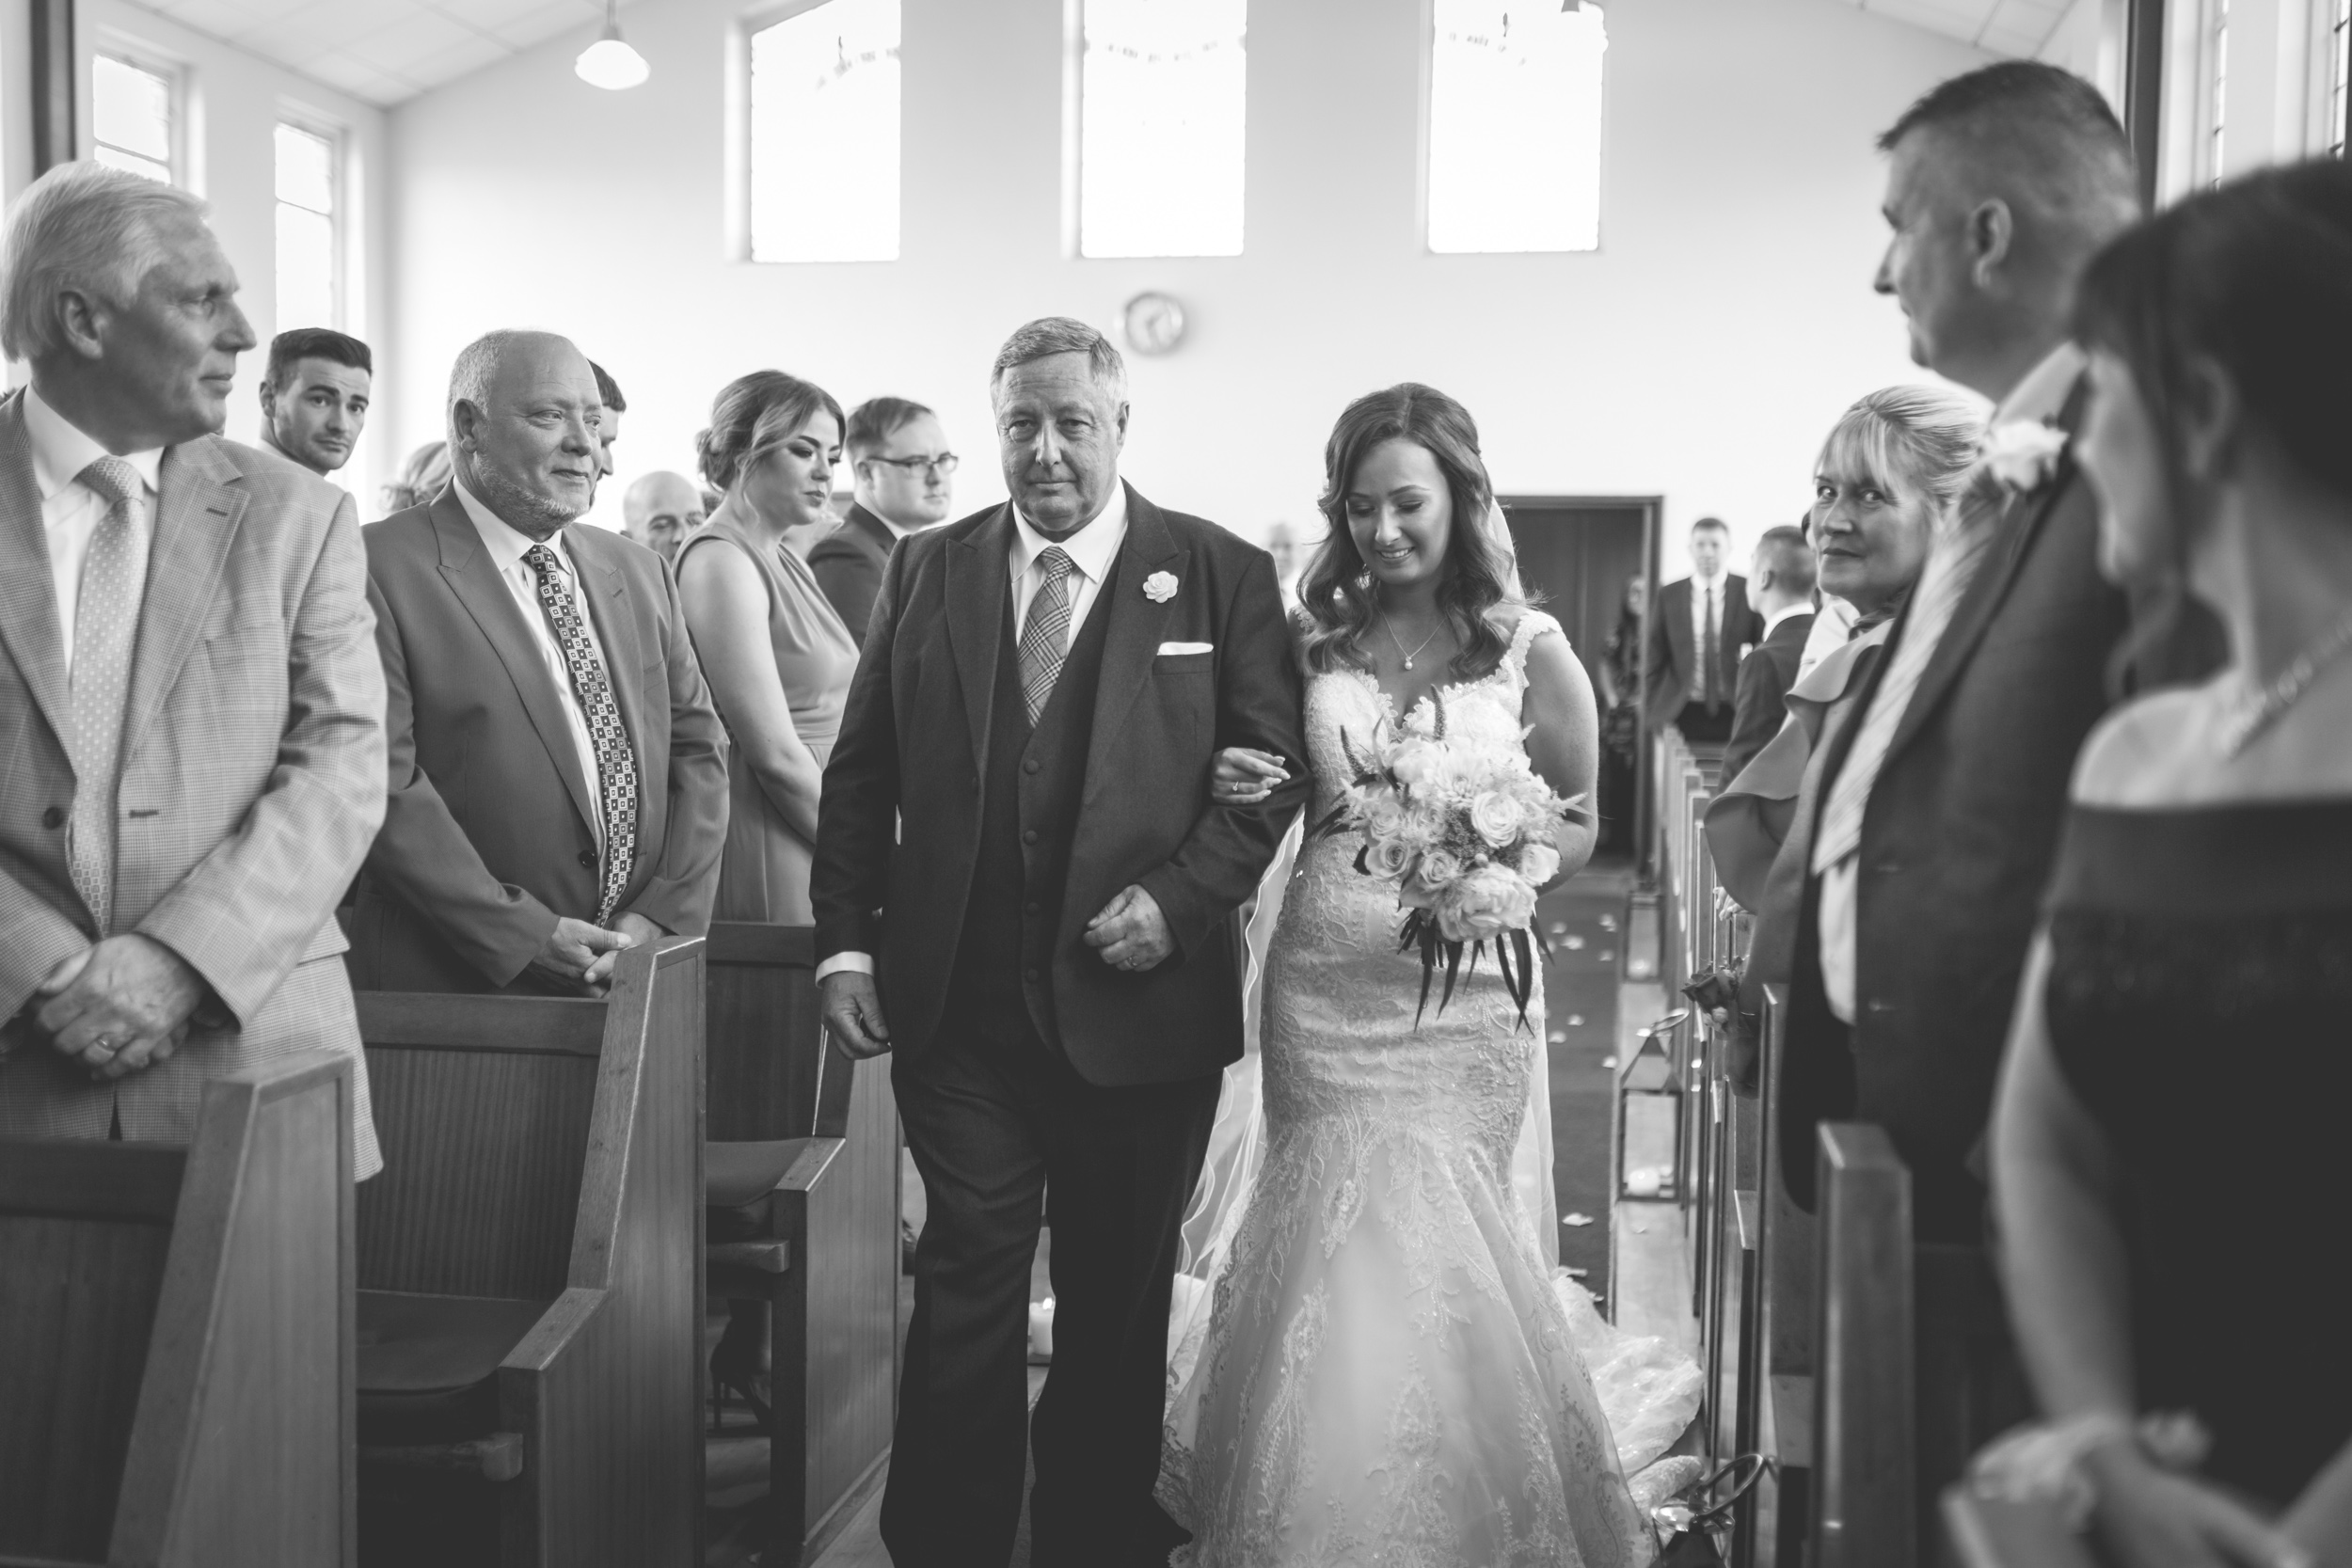 Brian McEwan | Northern Ireland Wedding Photographer | Rebecca & Michael | Ceremony-20.jpg